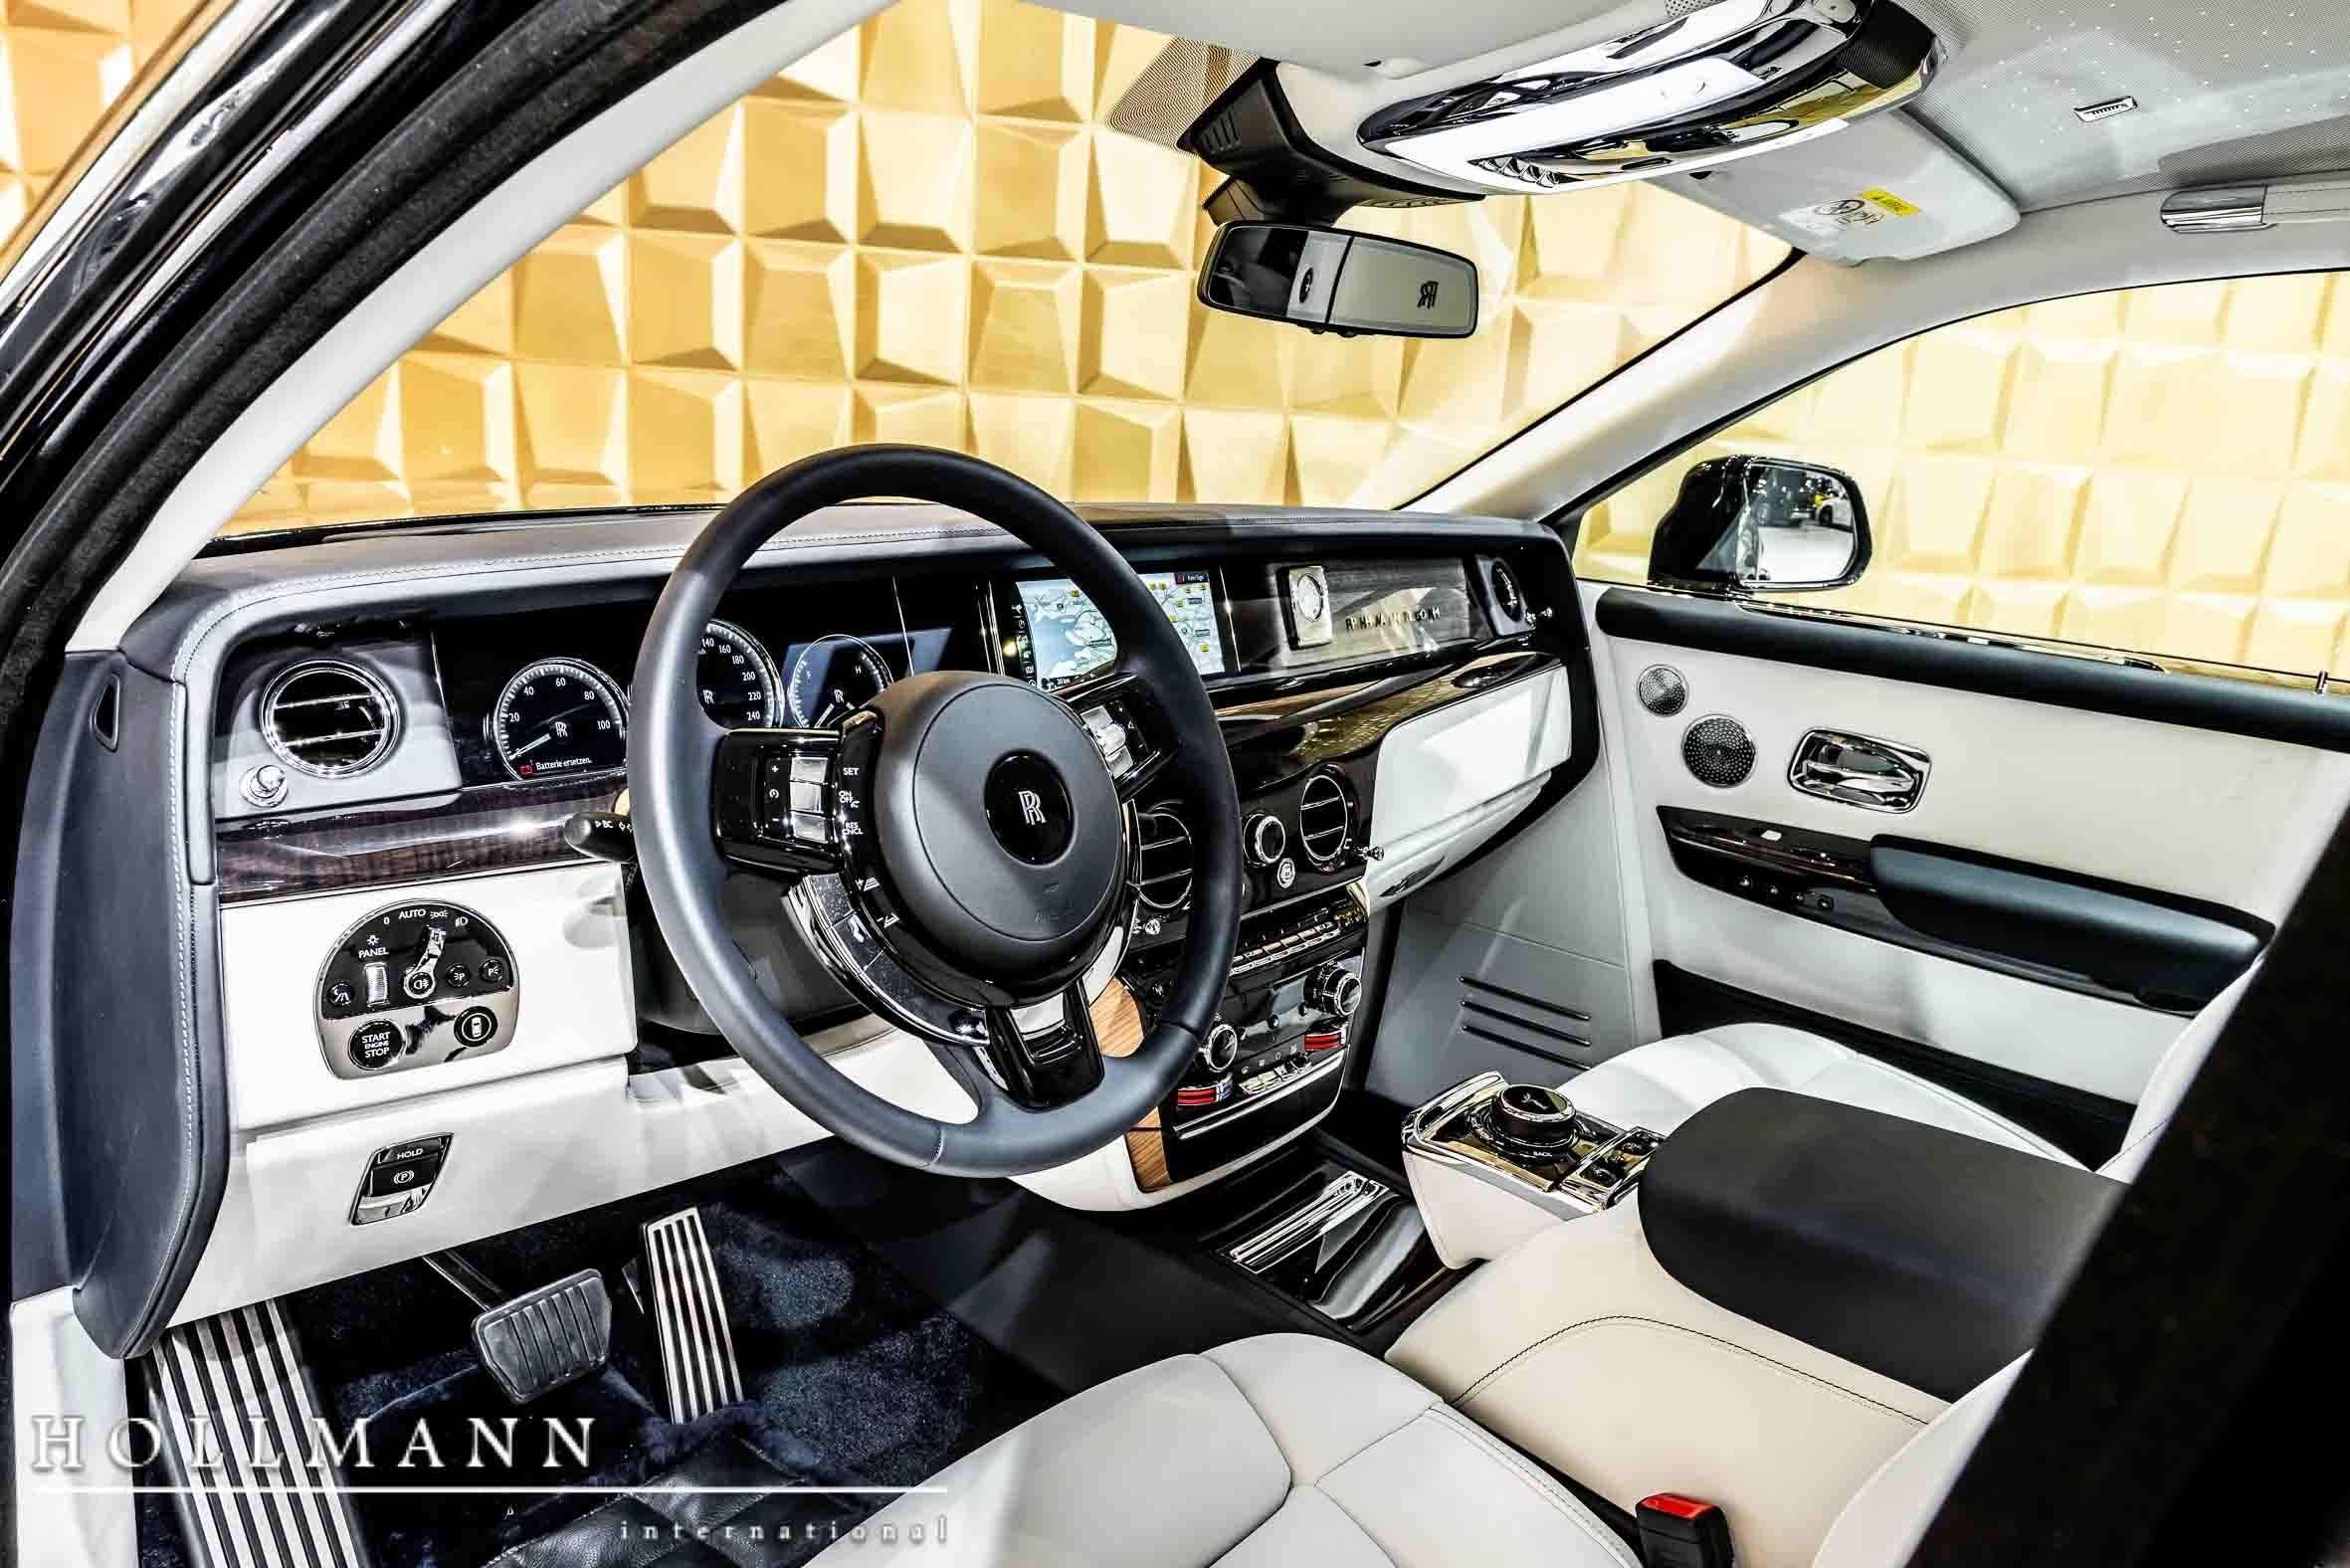 RollsRoyce Phantom VIII Luxury Pulse Cars Germany